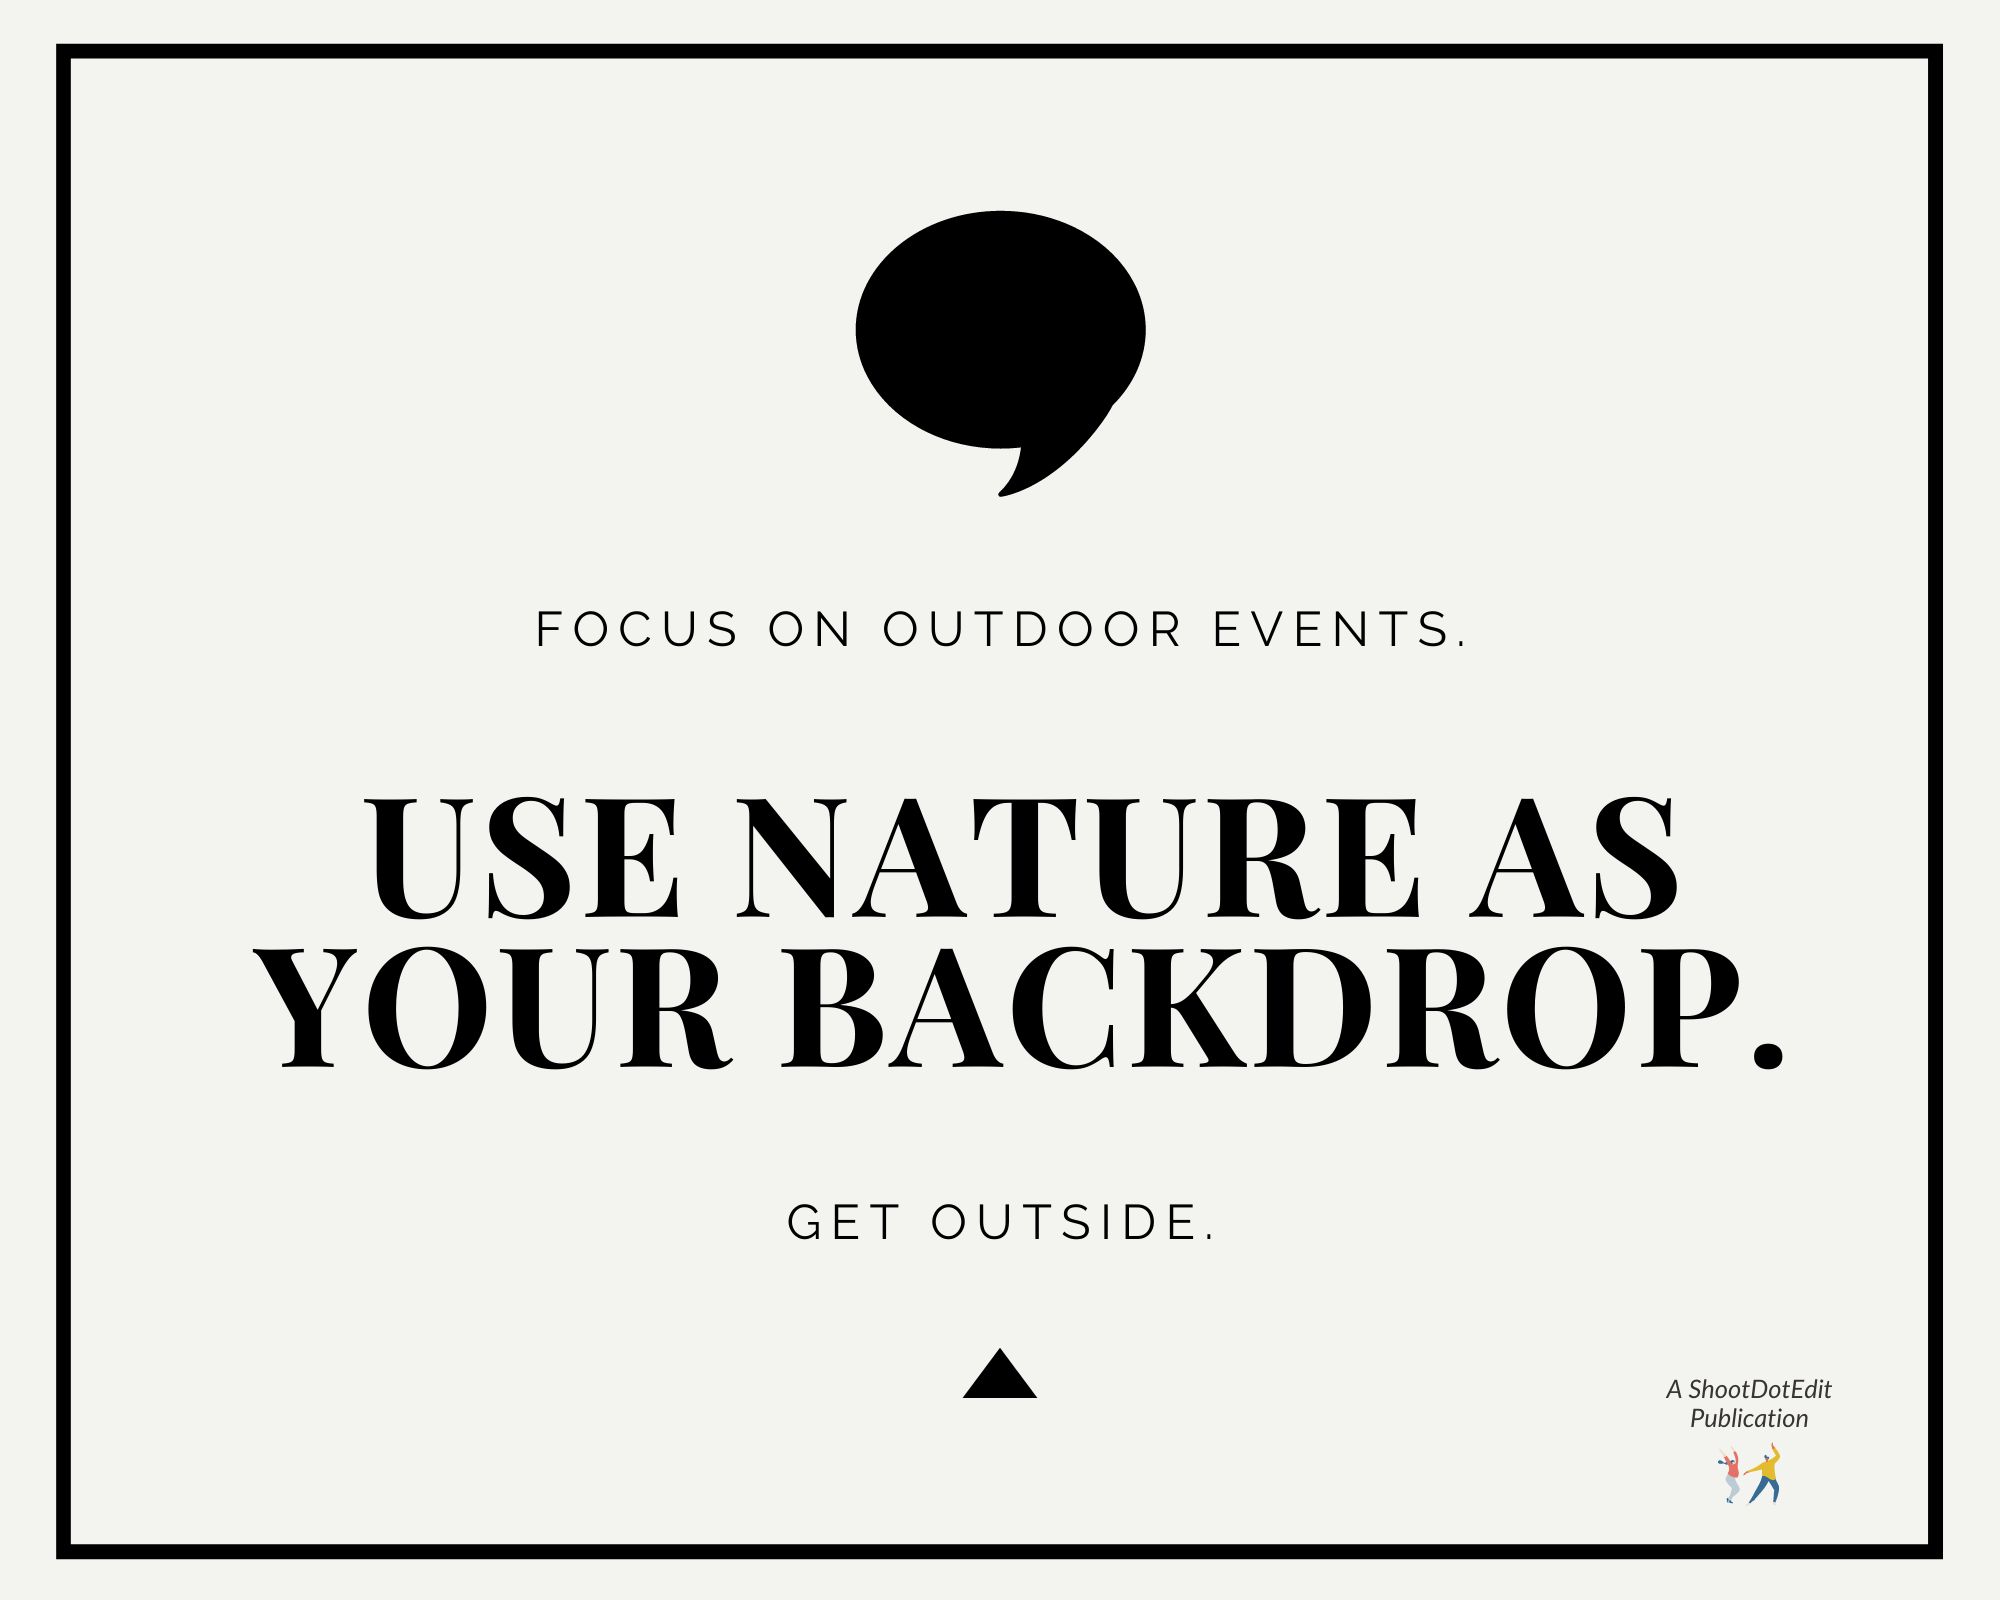 Graphic displaying - Focus on outdoor events. Use nature as your backdrop. Get outside. For COVID weddings